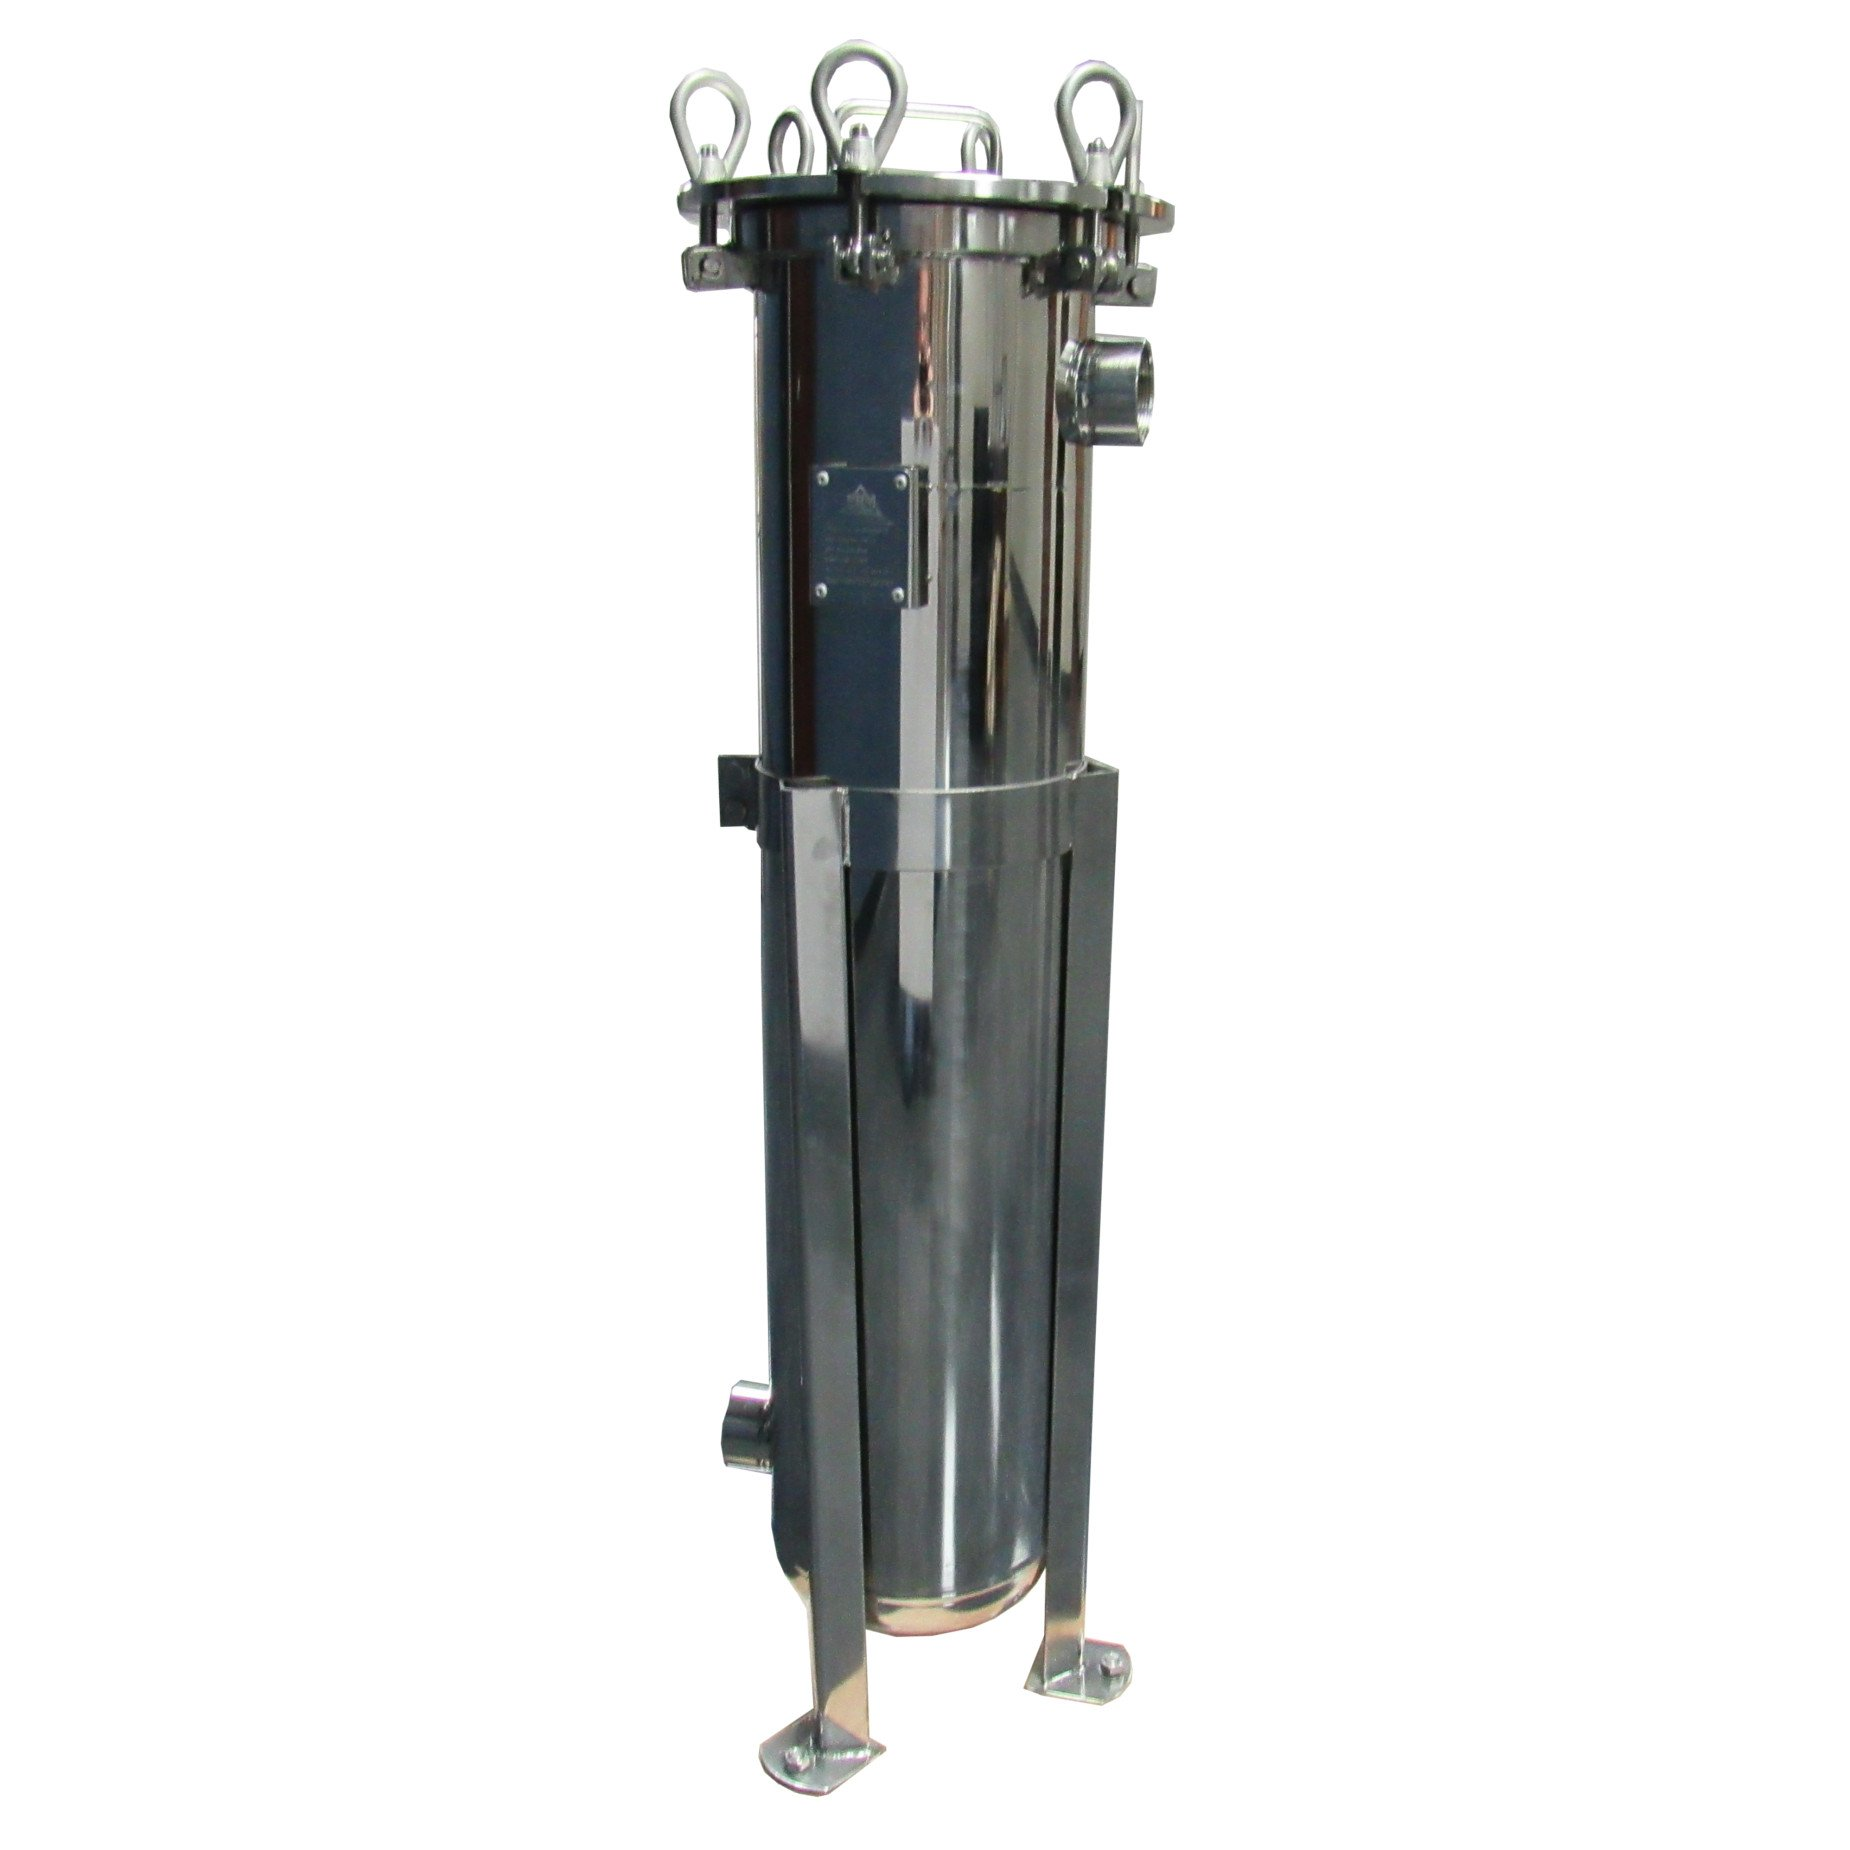 PRM BAG FILTER HOUSING; #2 SIZE; 304 SS; 2'' NPT IN/OUT; VITON O-RING; 150 PSI MAX.; FLAT PLATE TOP